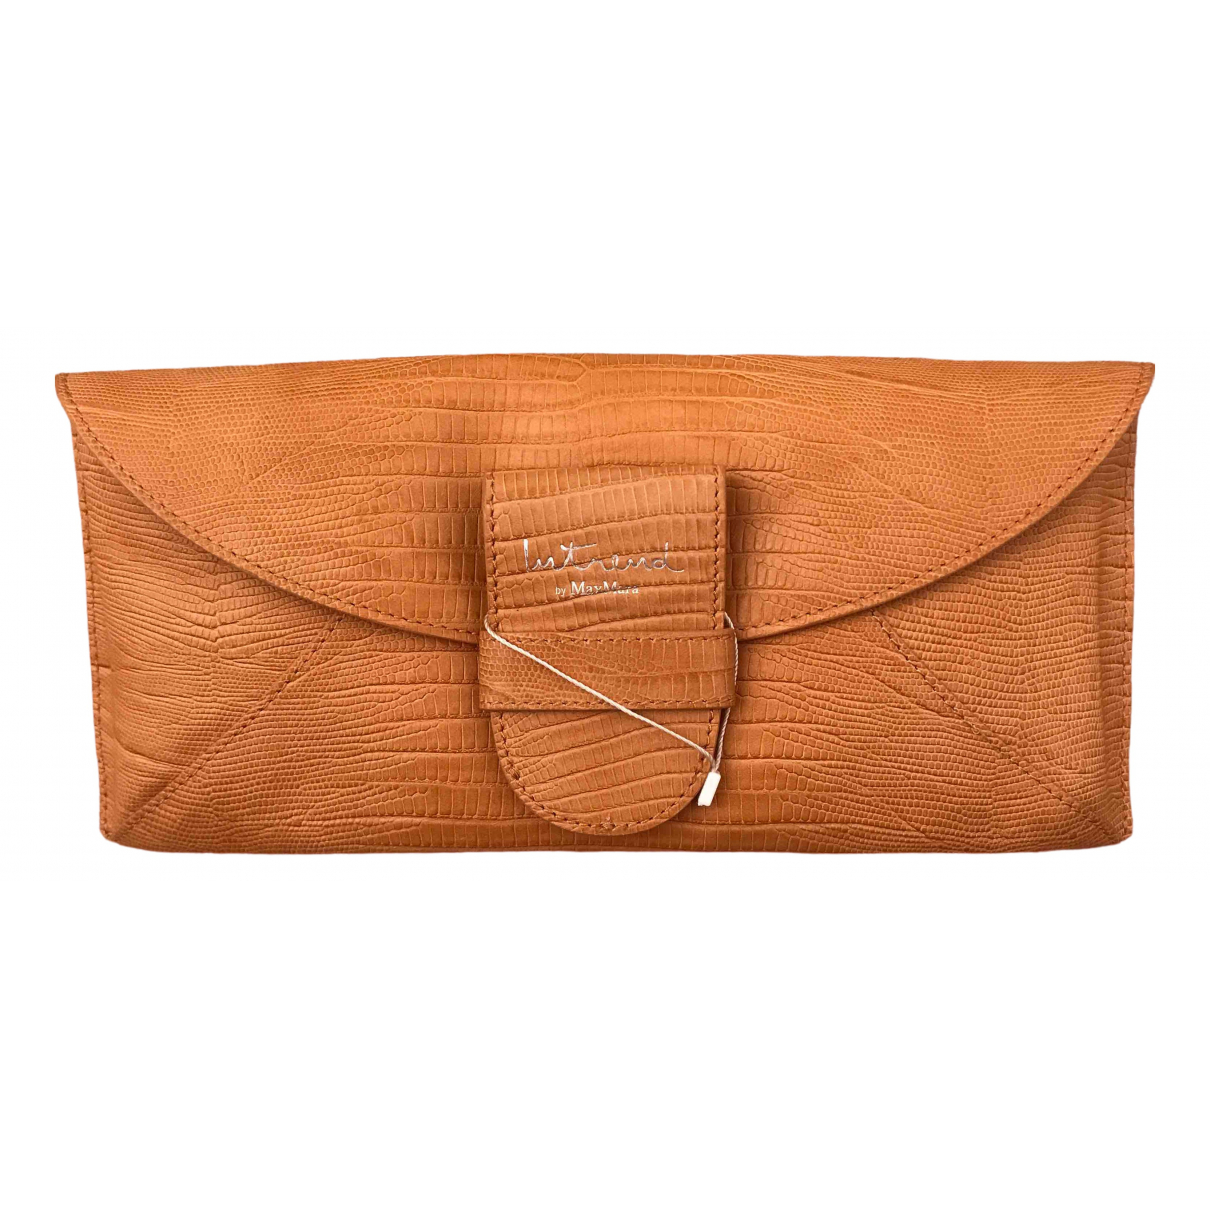 Intrend \N Camel Leather Clutch bag for Women \N